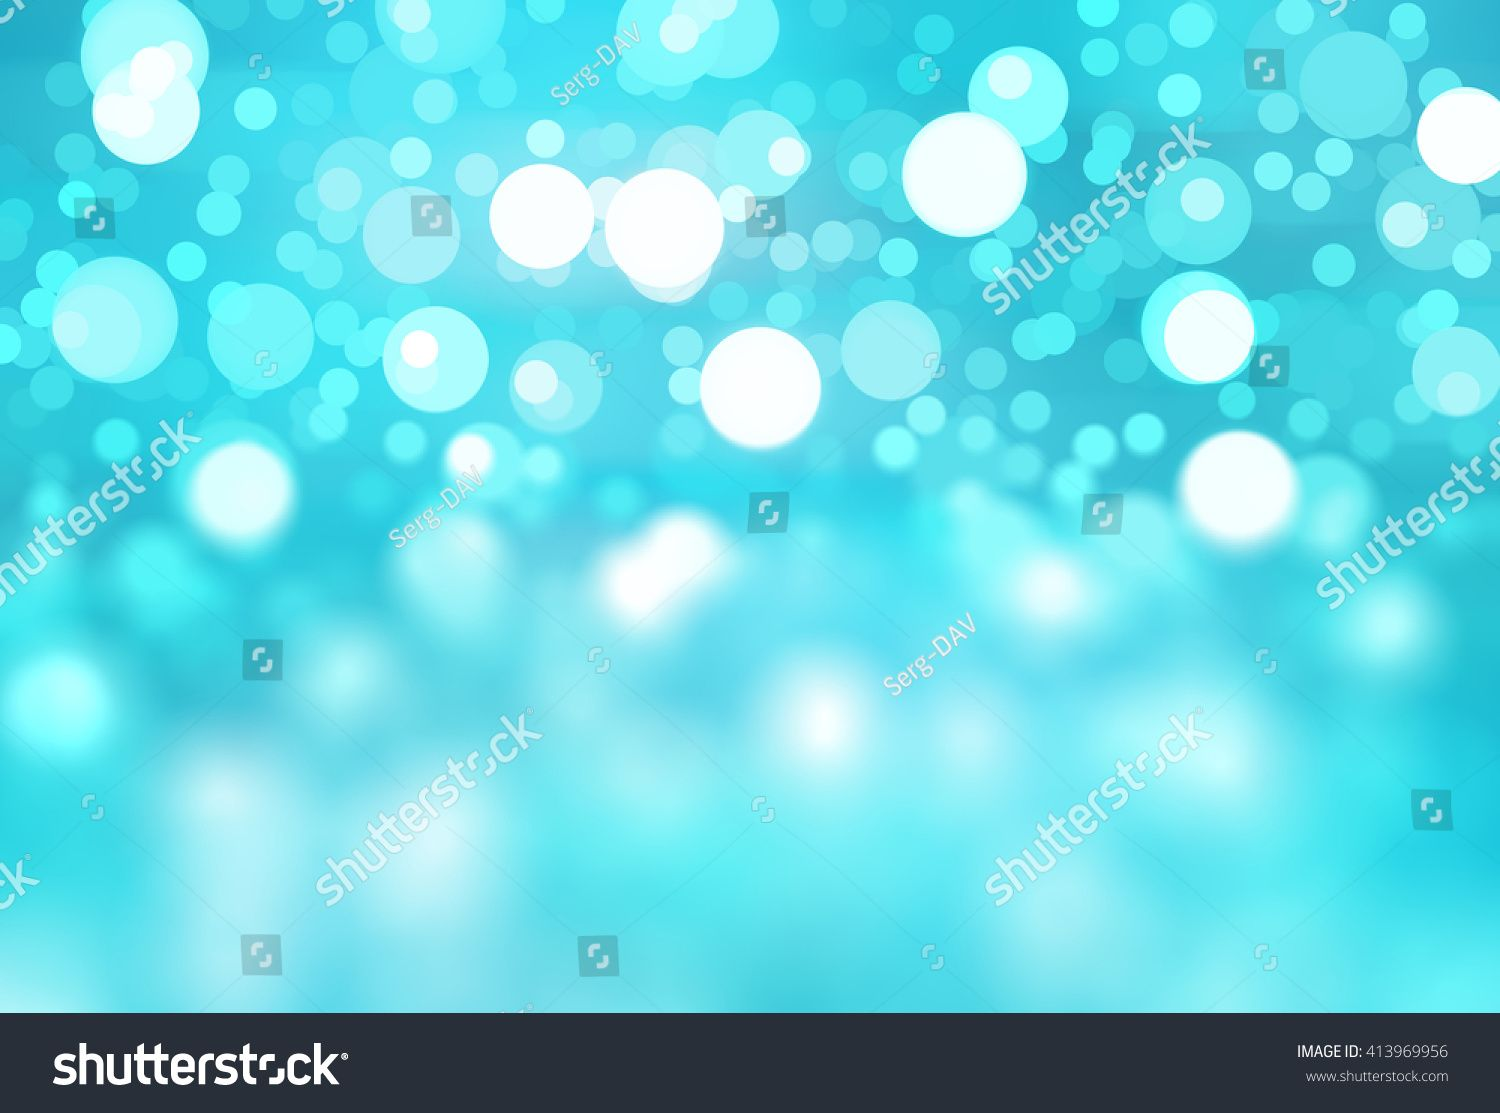 abstract background blue bokeh circles Beautiful background with particles